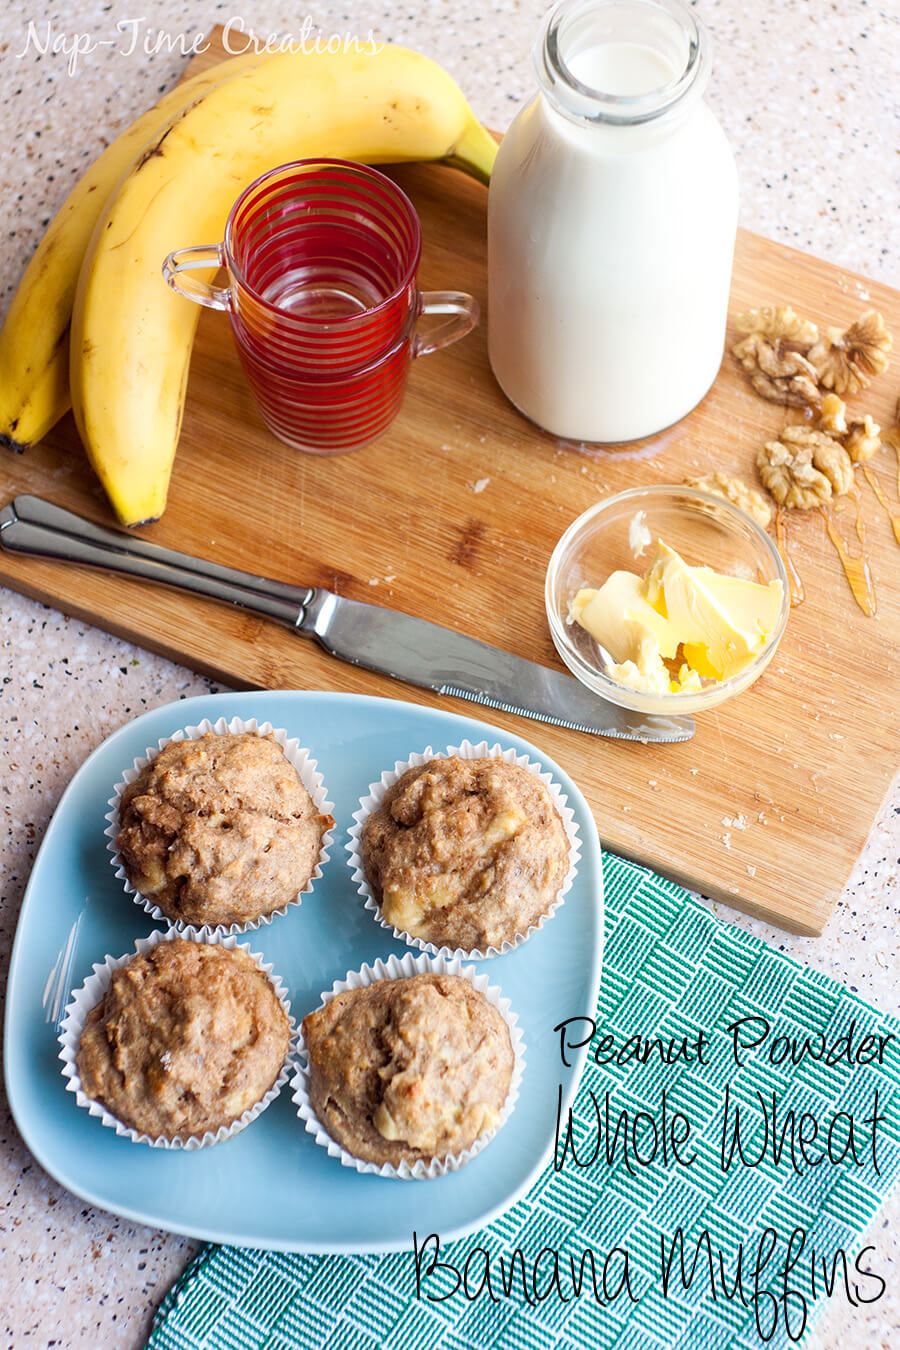 Whole Wheat Banana muffins with peanut powder from Nap-Time Creations #ad #StartWithJifPowder